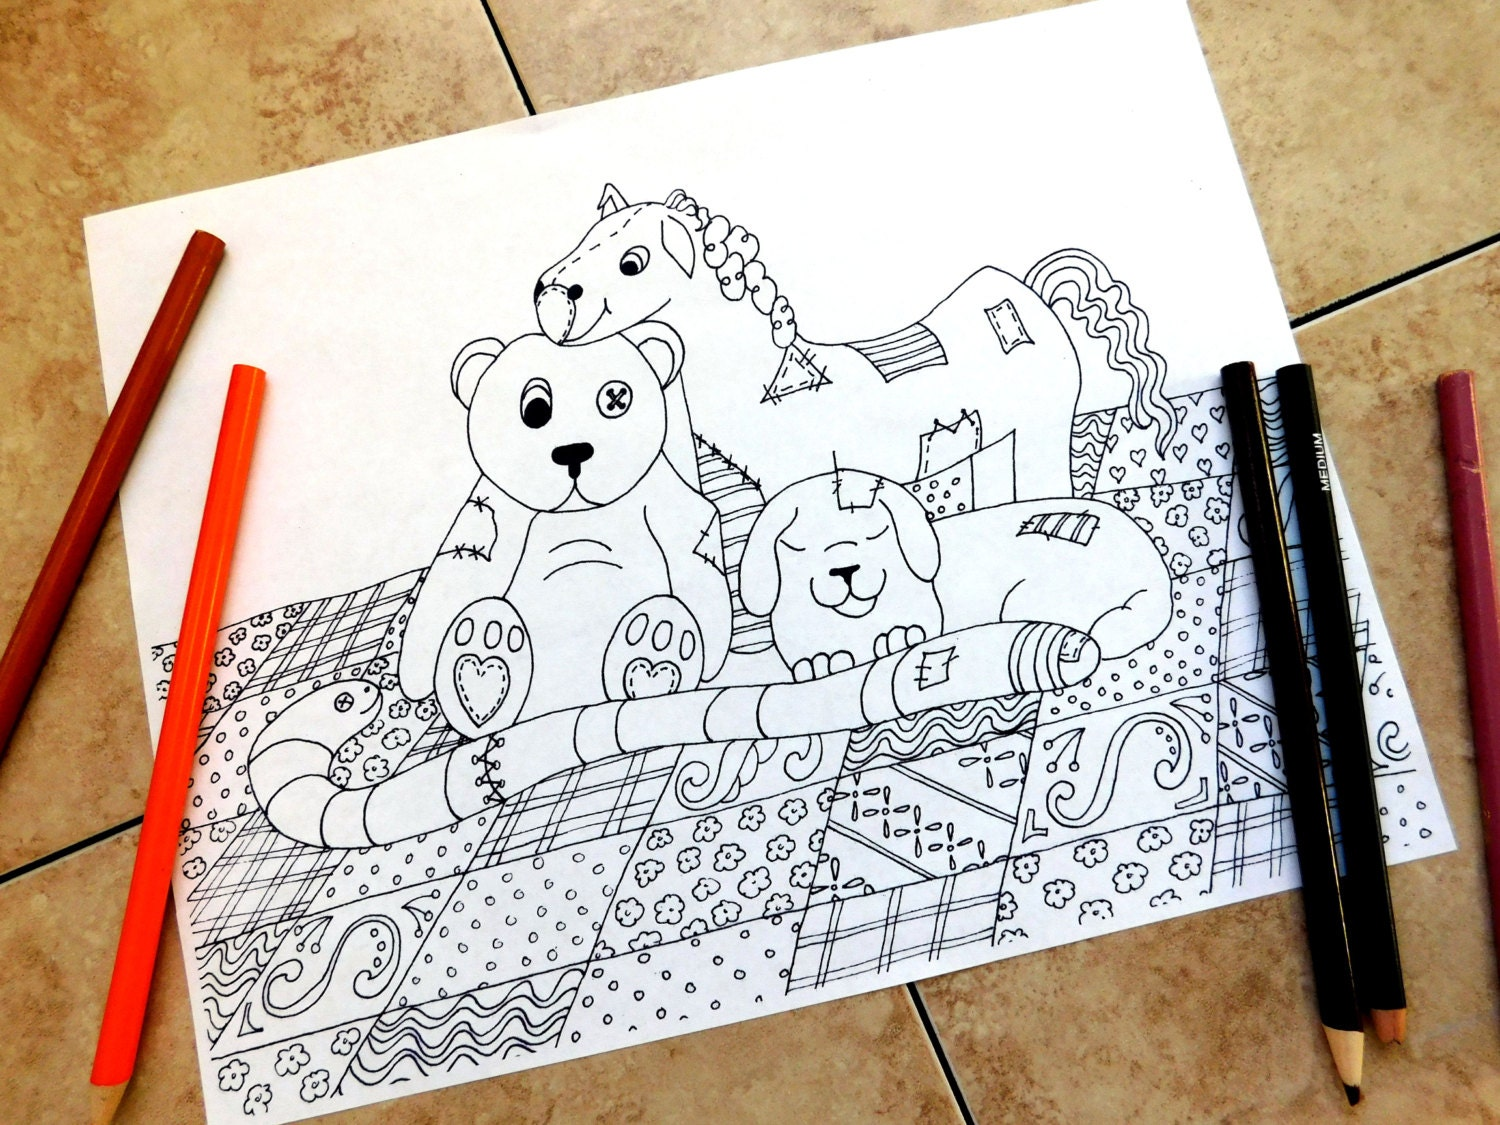 stuffed animals coloring pages adult coloring page teddy. Black Bedroom Furniture Sets. Home Design Ideas